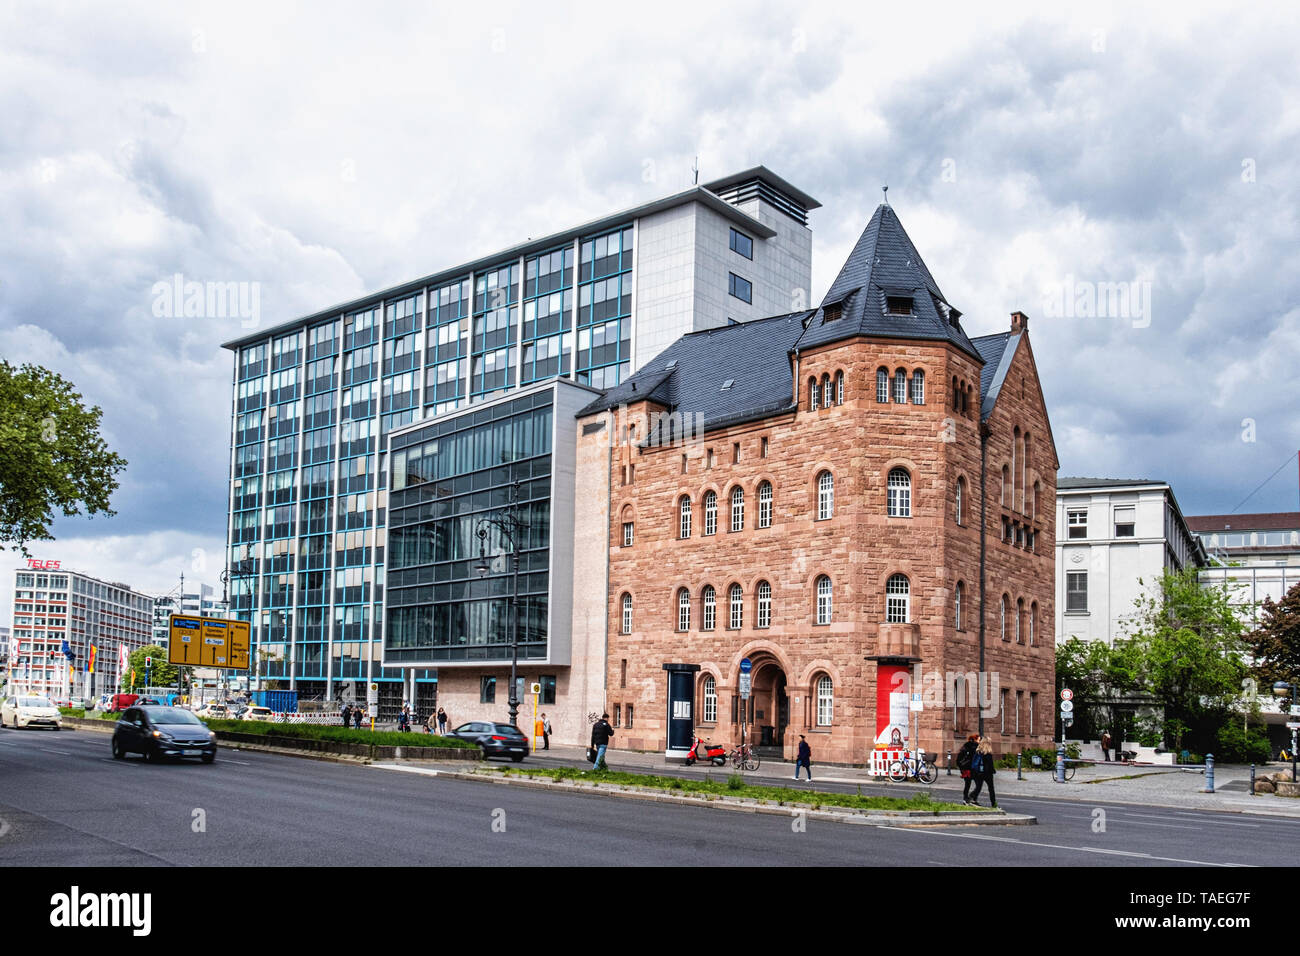 Faculty of Music Of the University of the Arts Building In Charlottenburg Berlin. . Former Institute for Sacred Music. Historic listed building Stock Photo